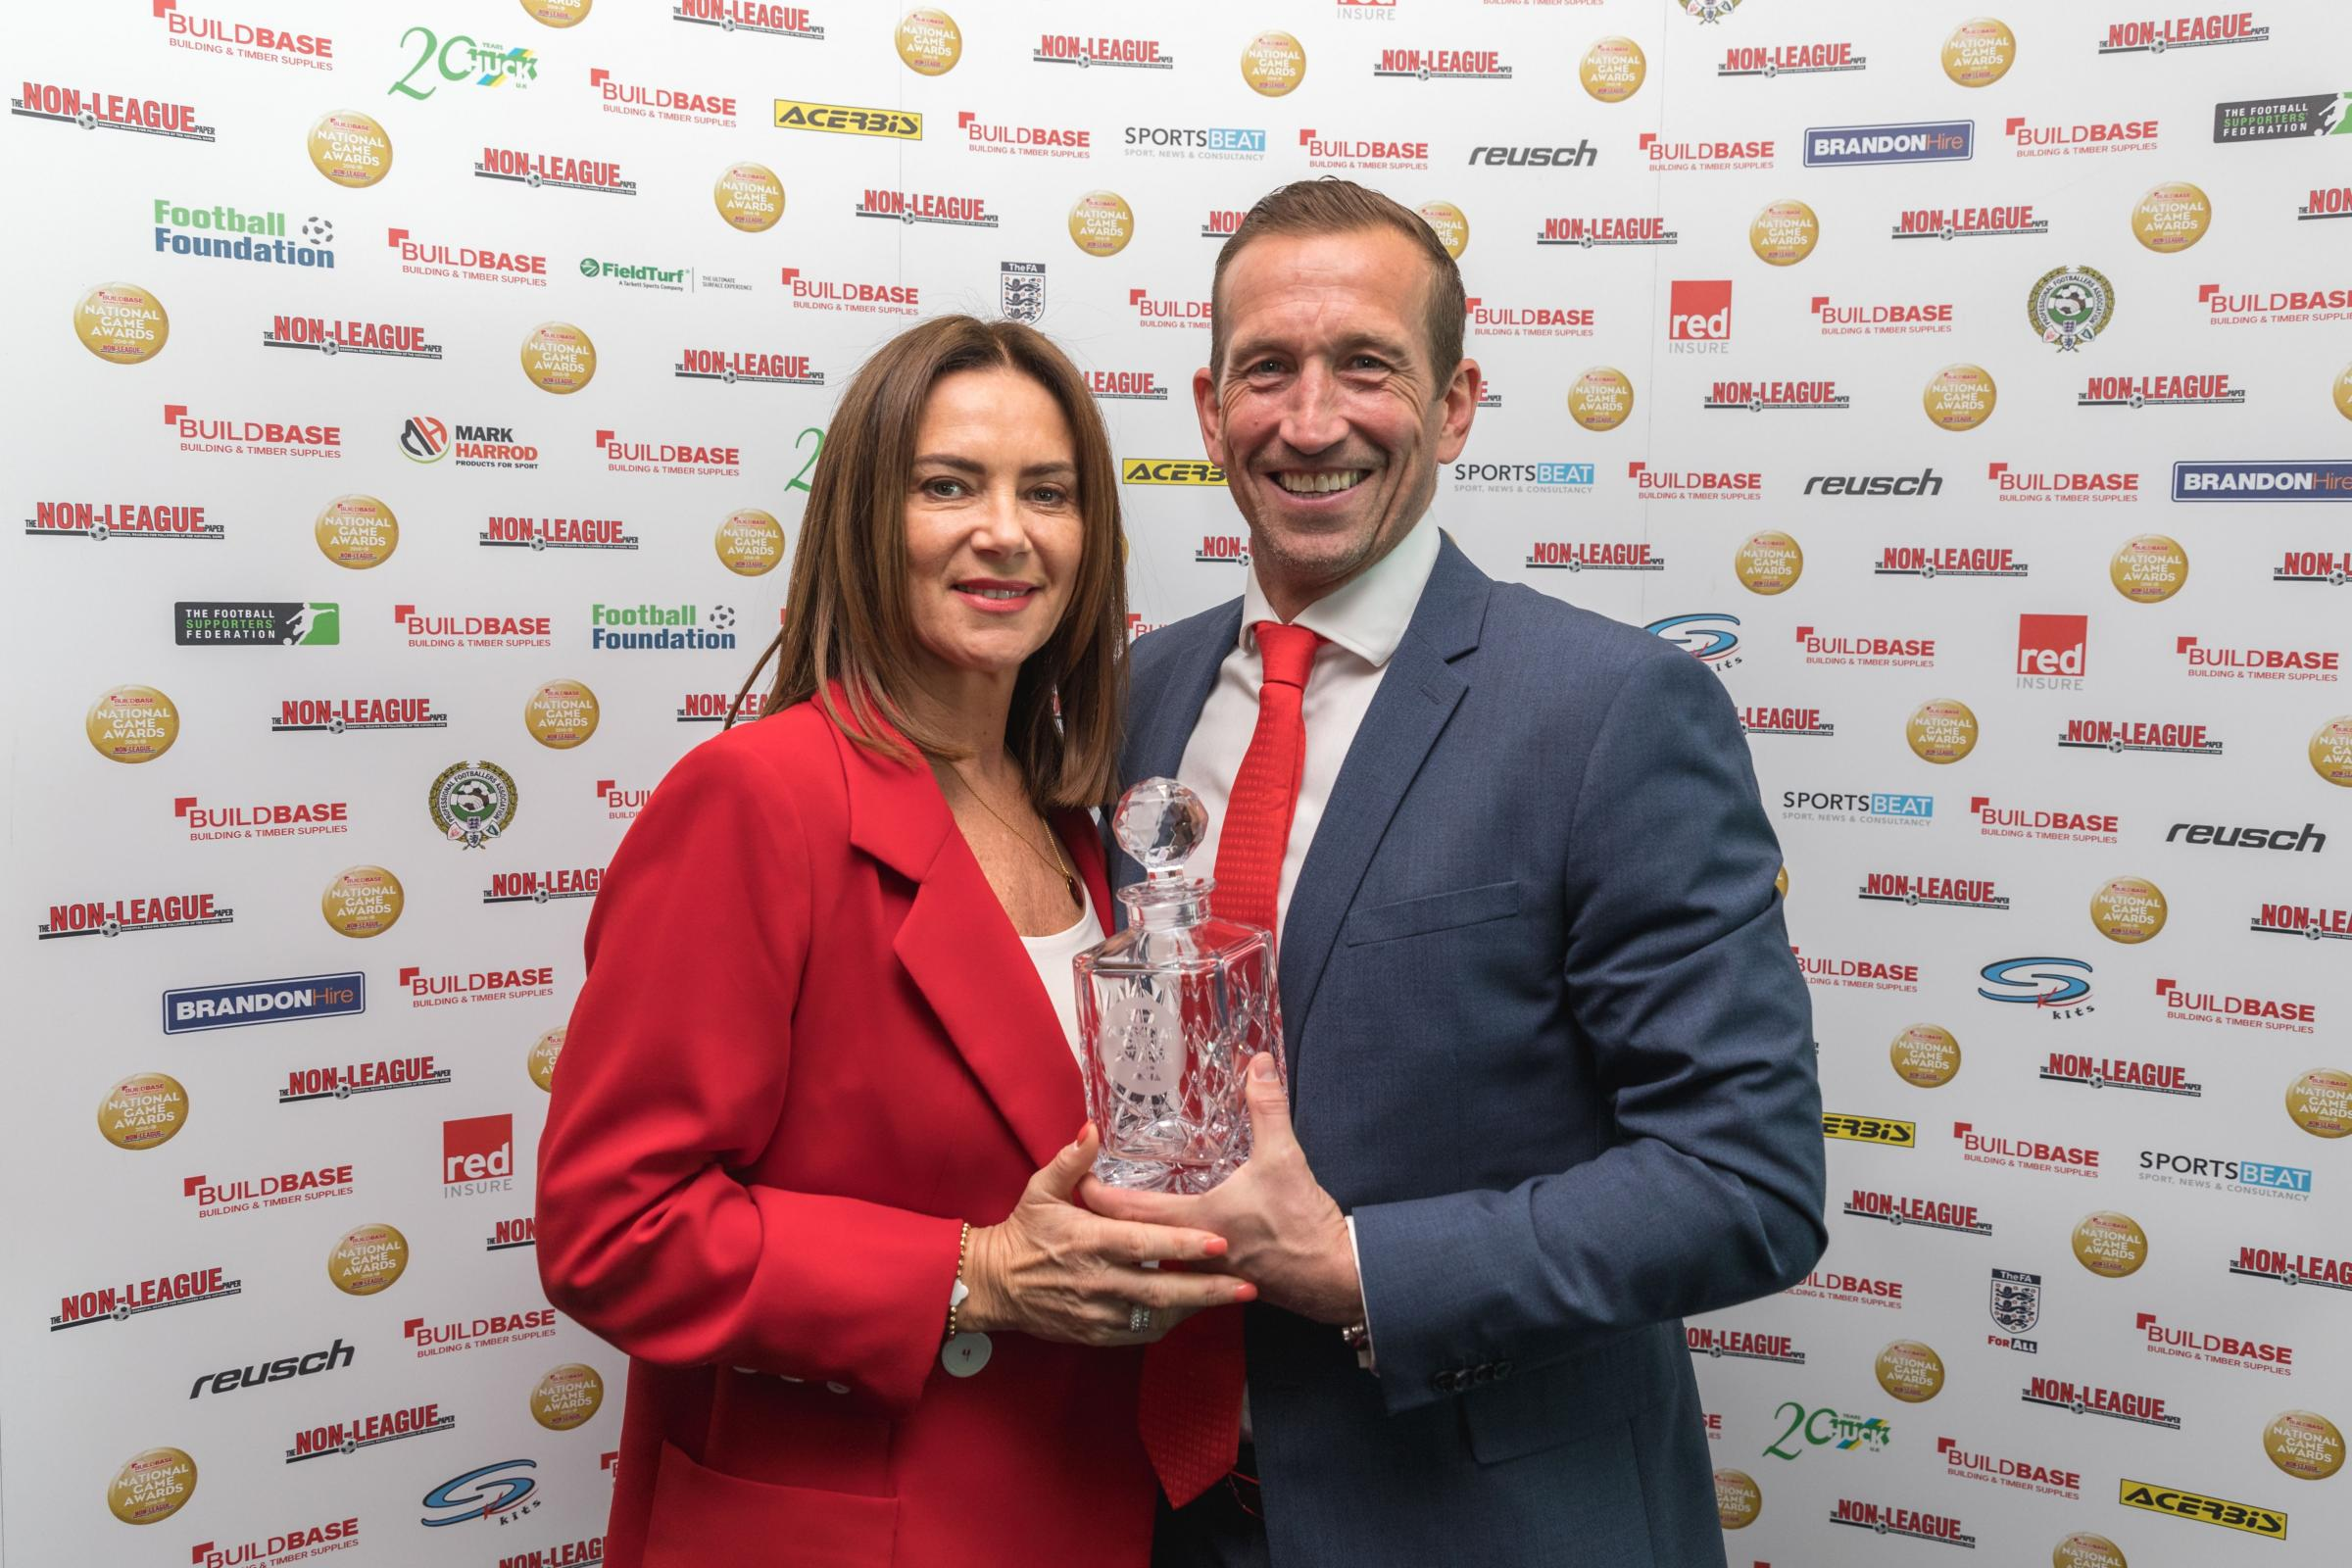 Justin Edinburgh picked up his award at Stamford Bridge